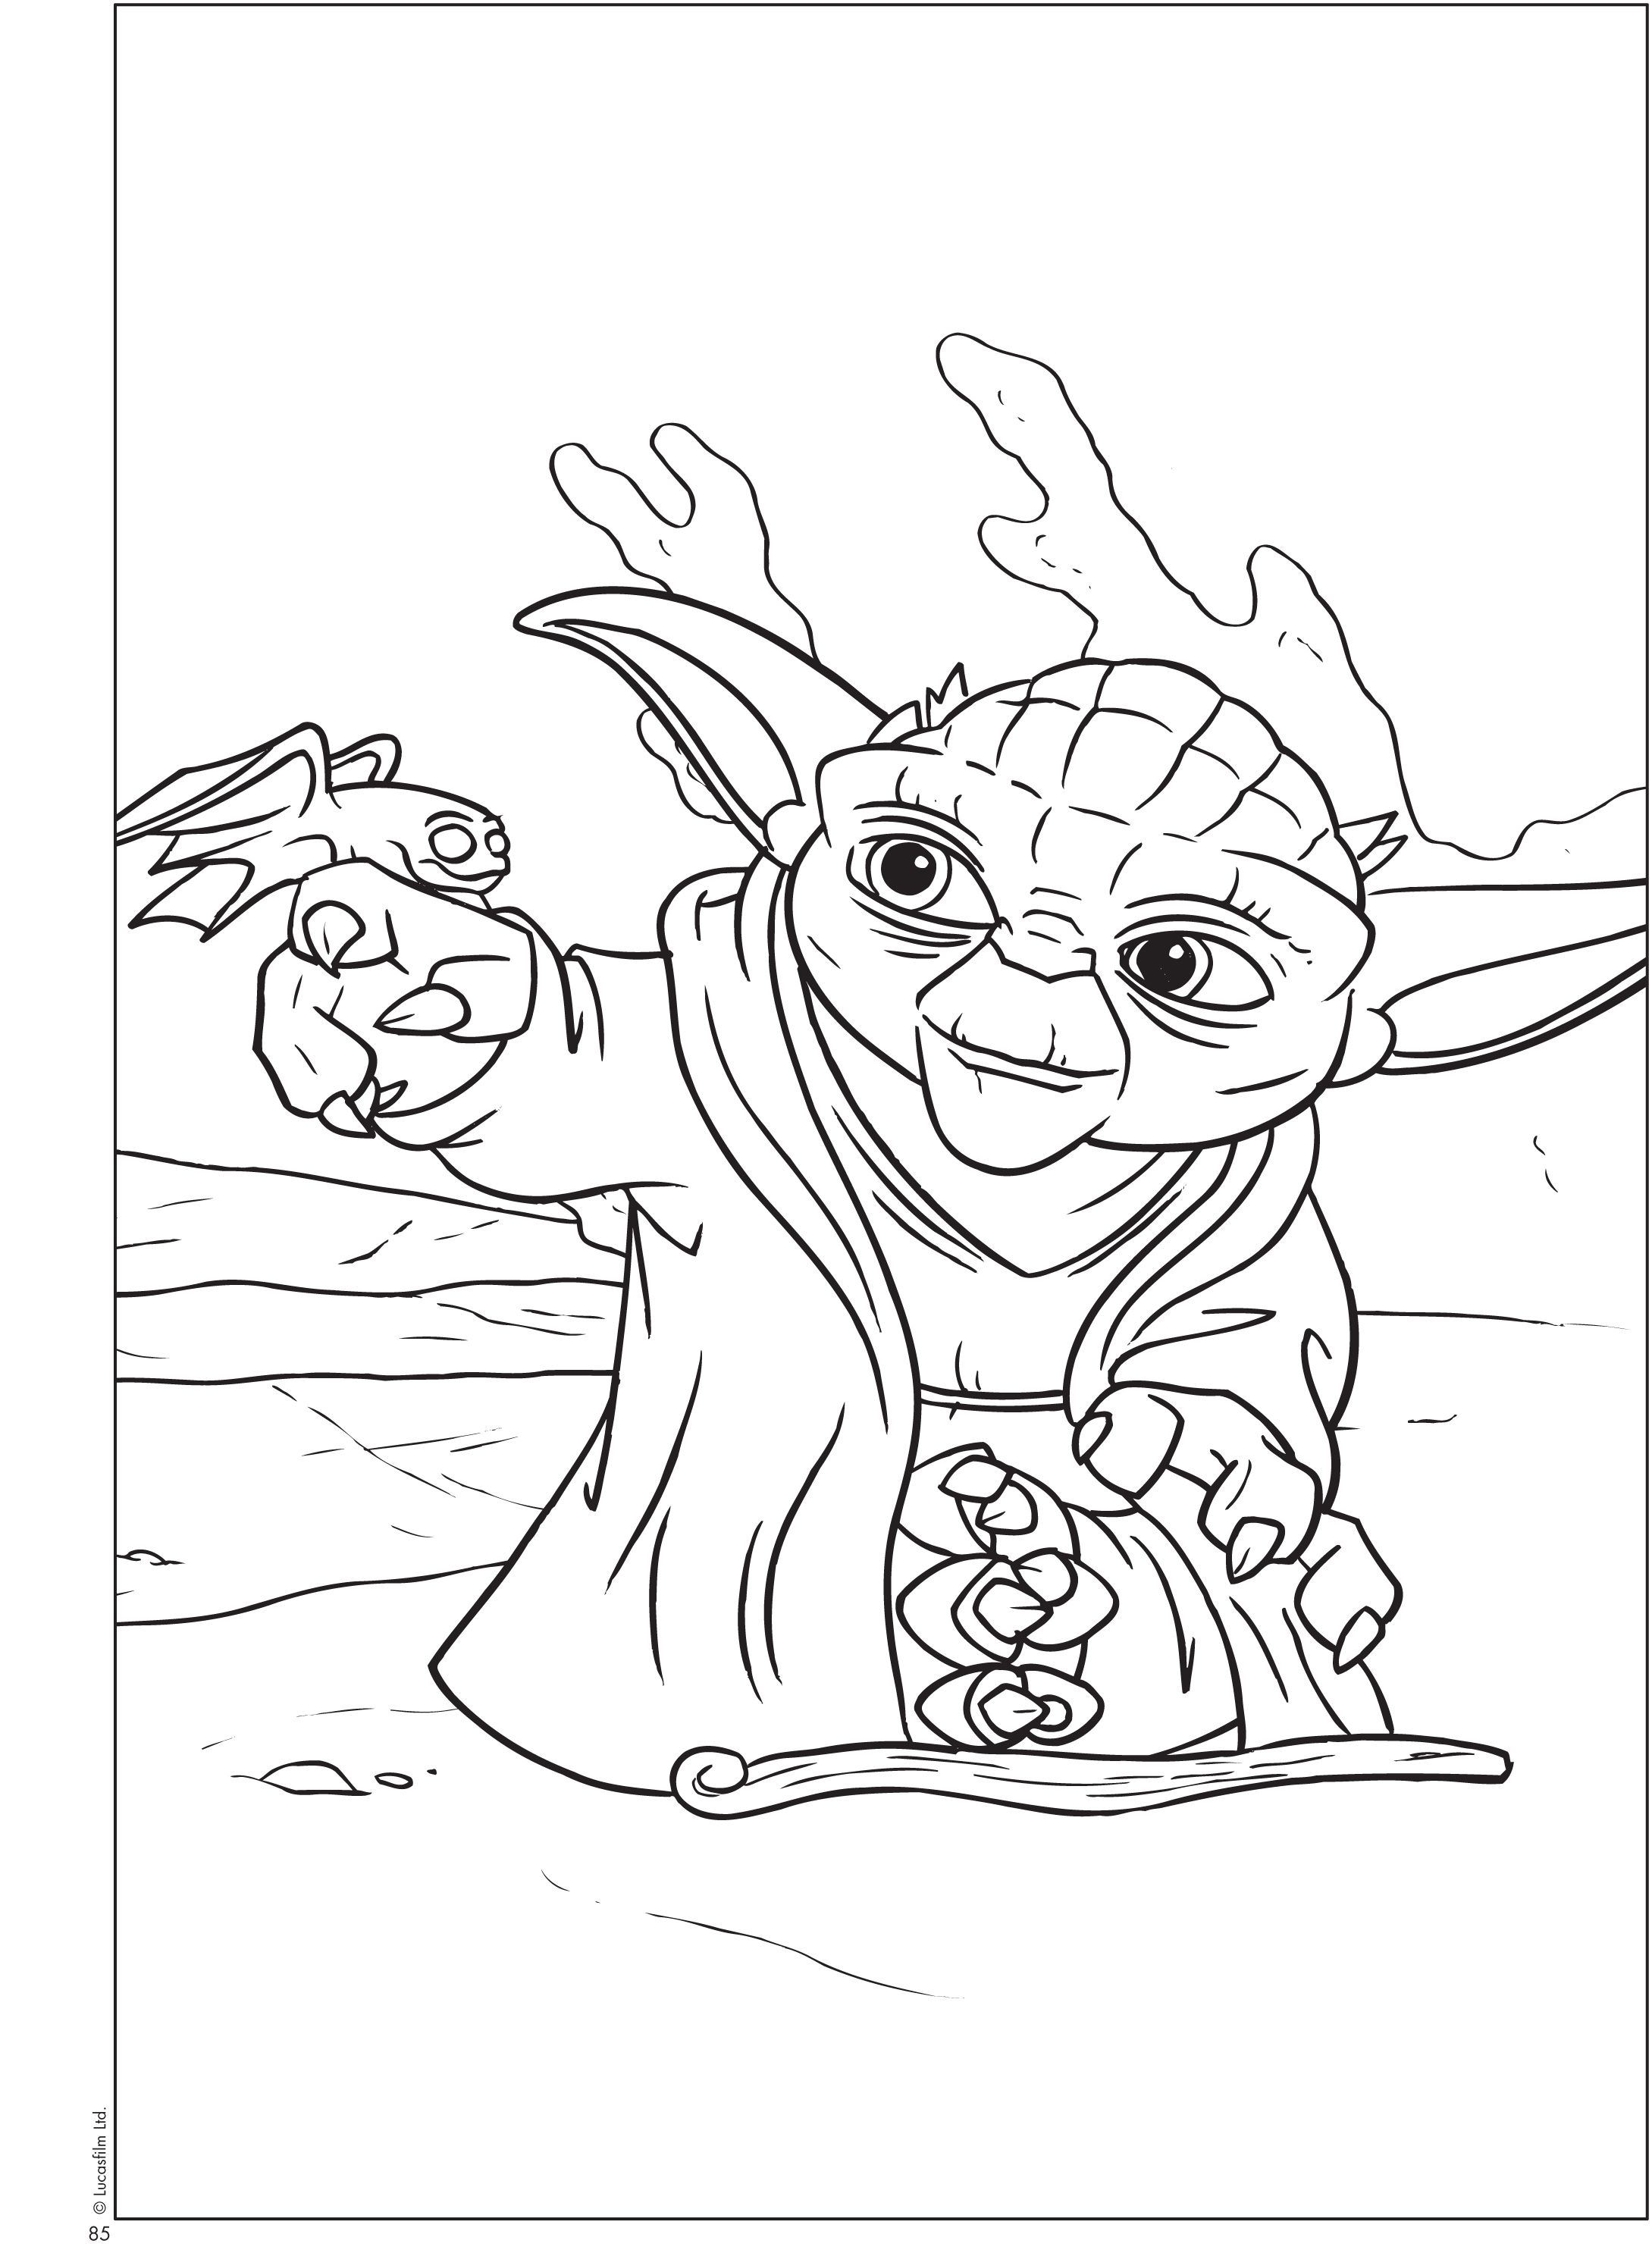 star wars printable coloring pages # 13